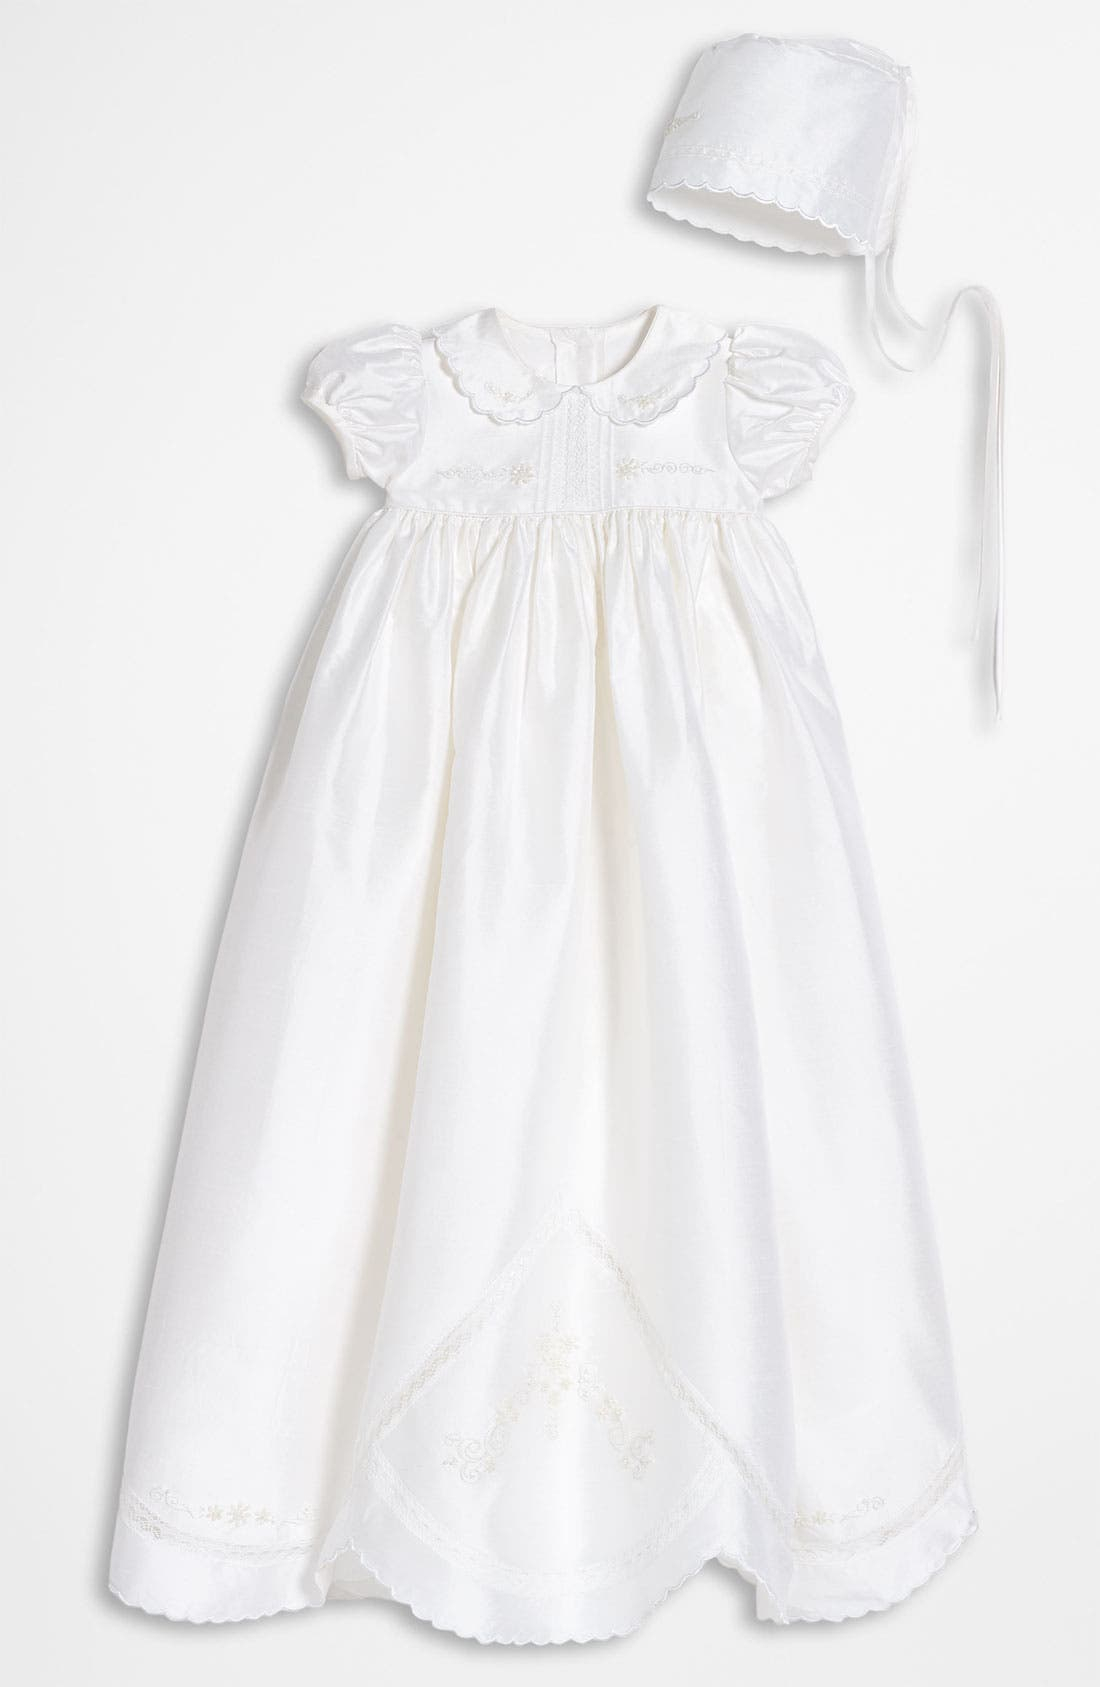 Main Image - Little Things Mean a Lot Dupioni Silk Christening Gown (Baby)